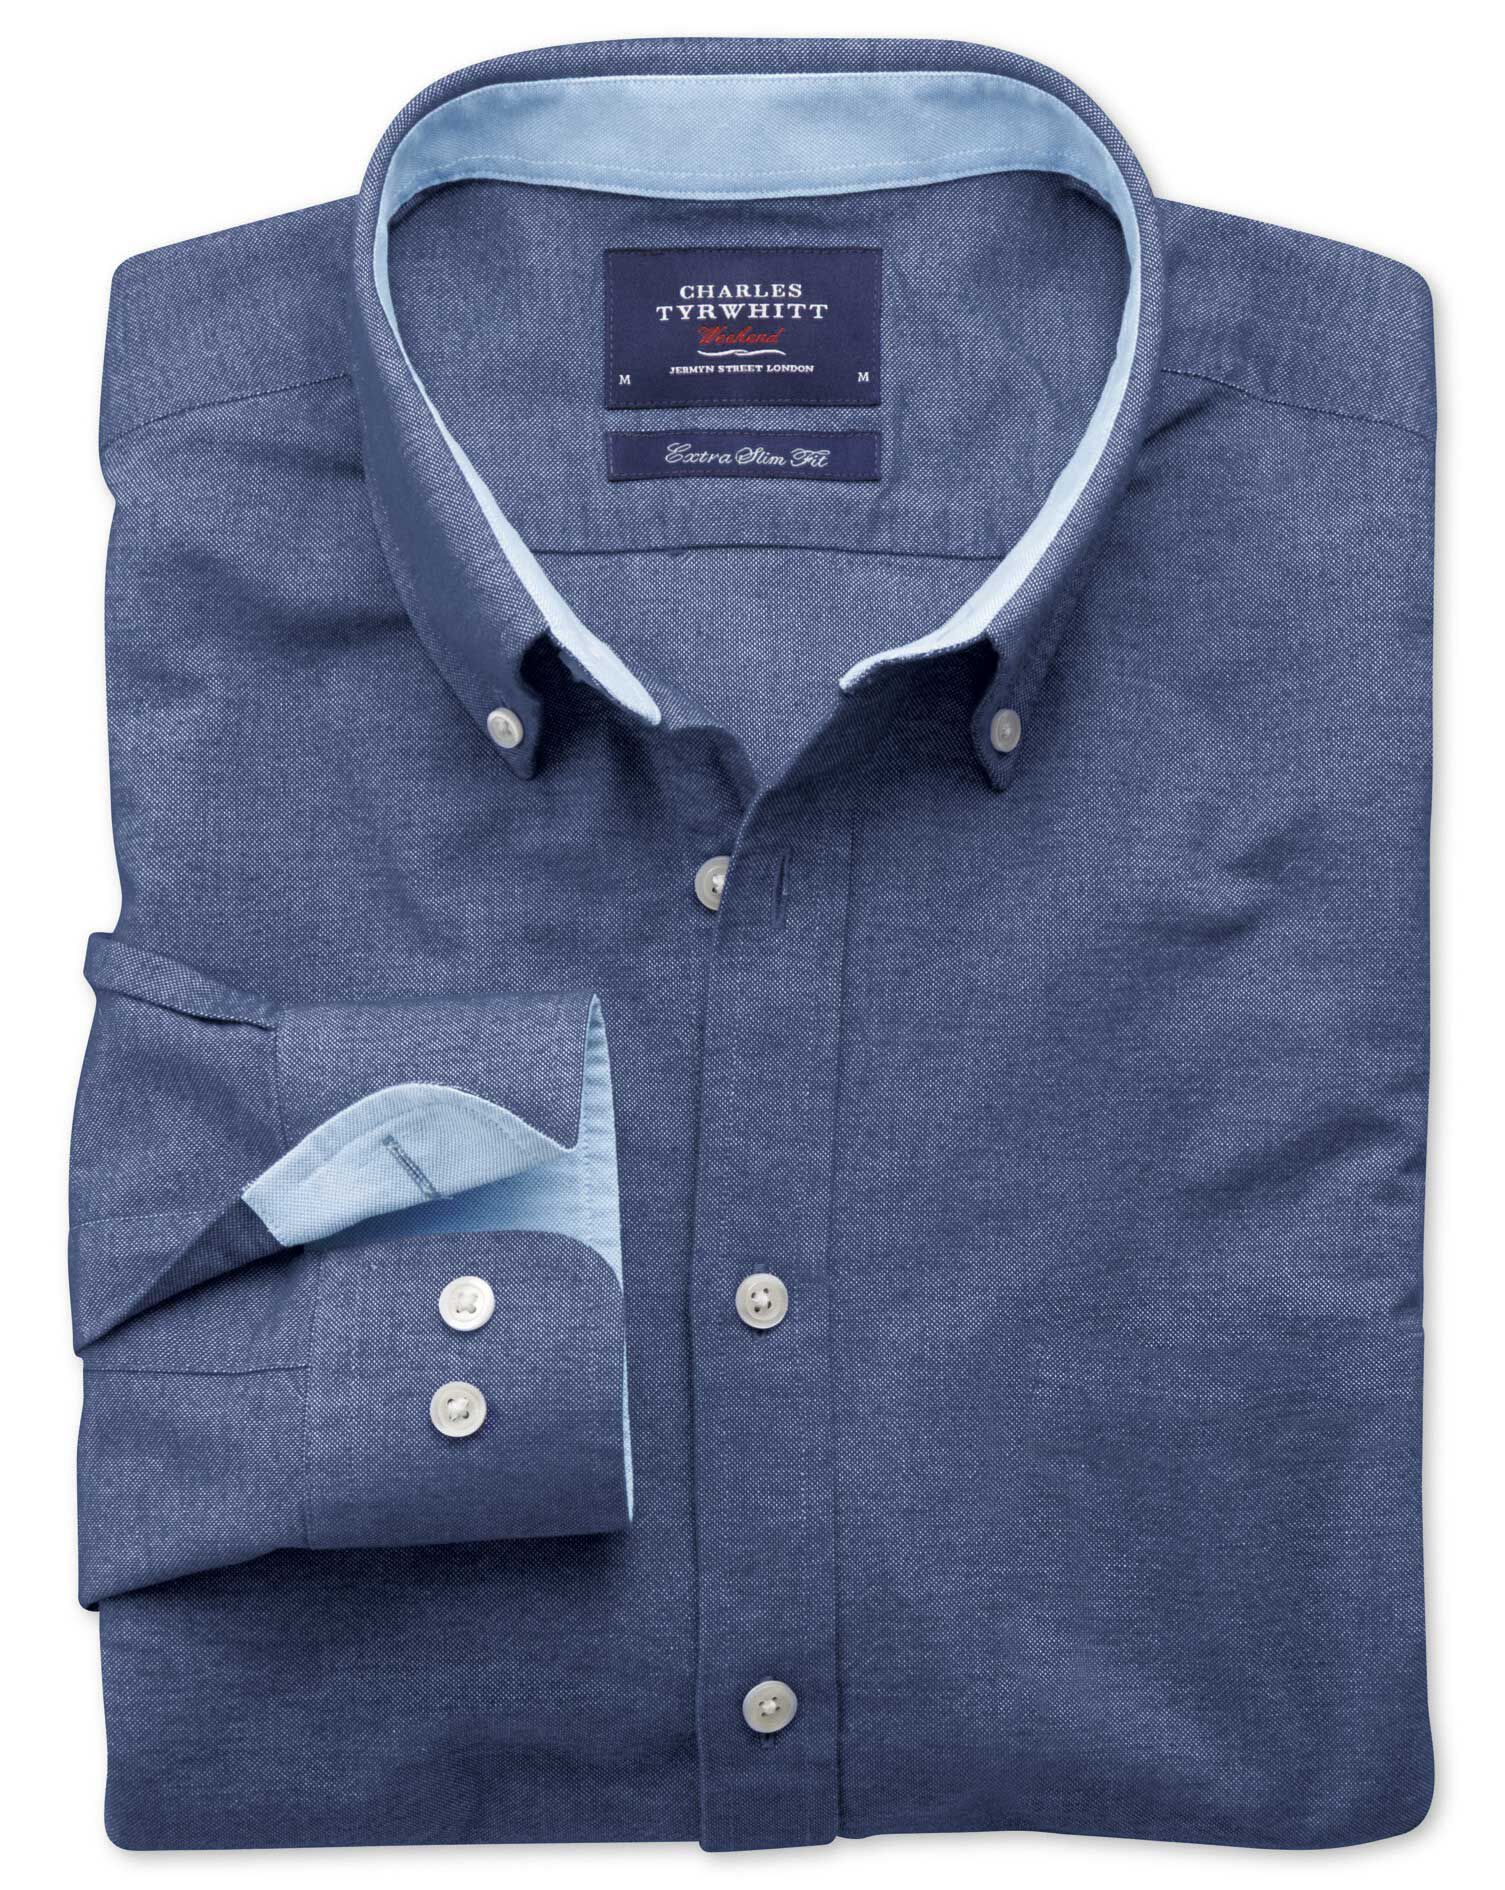 Extra Slim Fit Denim Blue Washed Oxford Cotton Shirt Single Cuff Size Medium by Charles Tyrwhitt